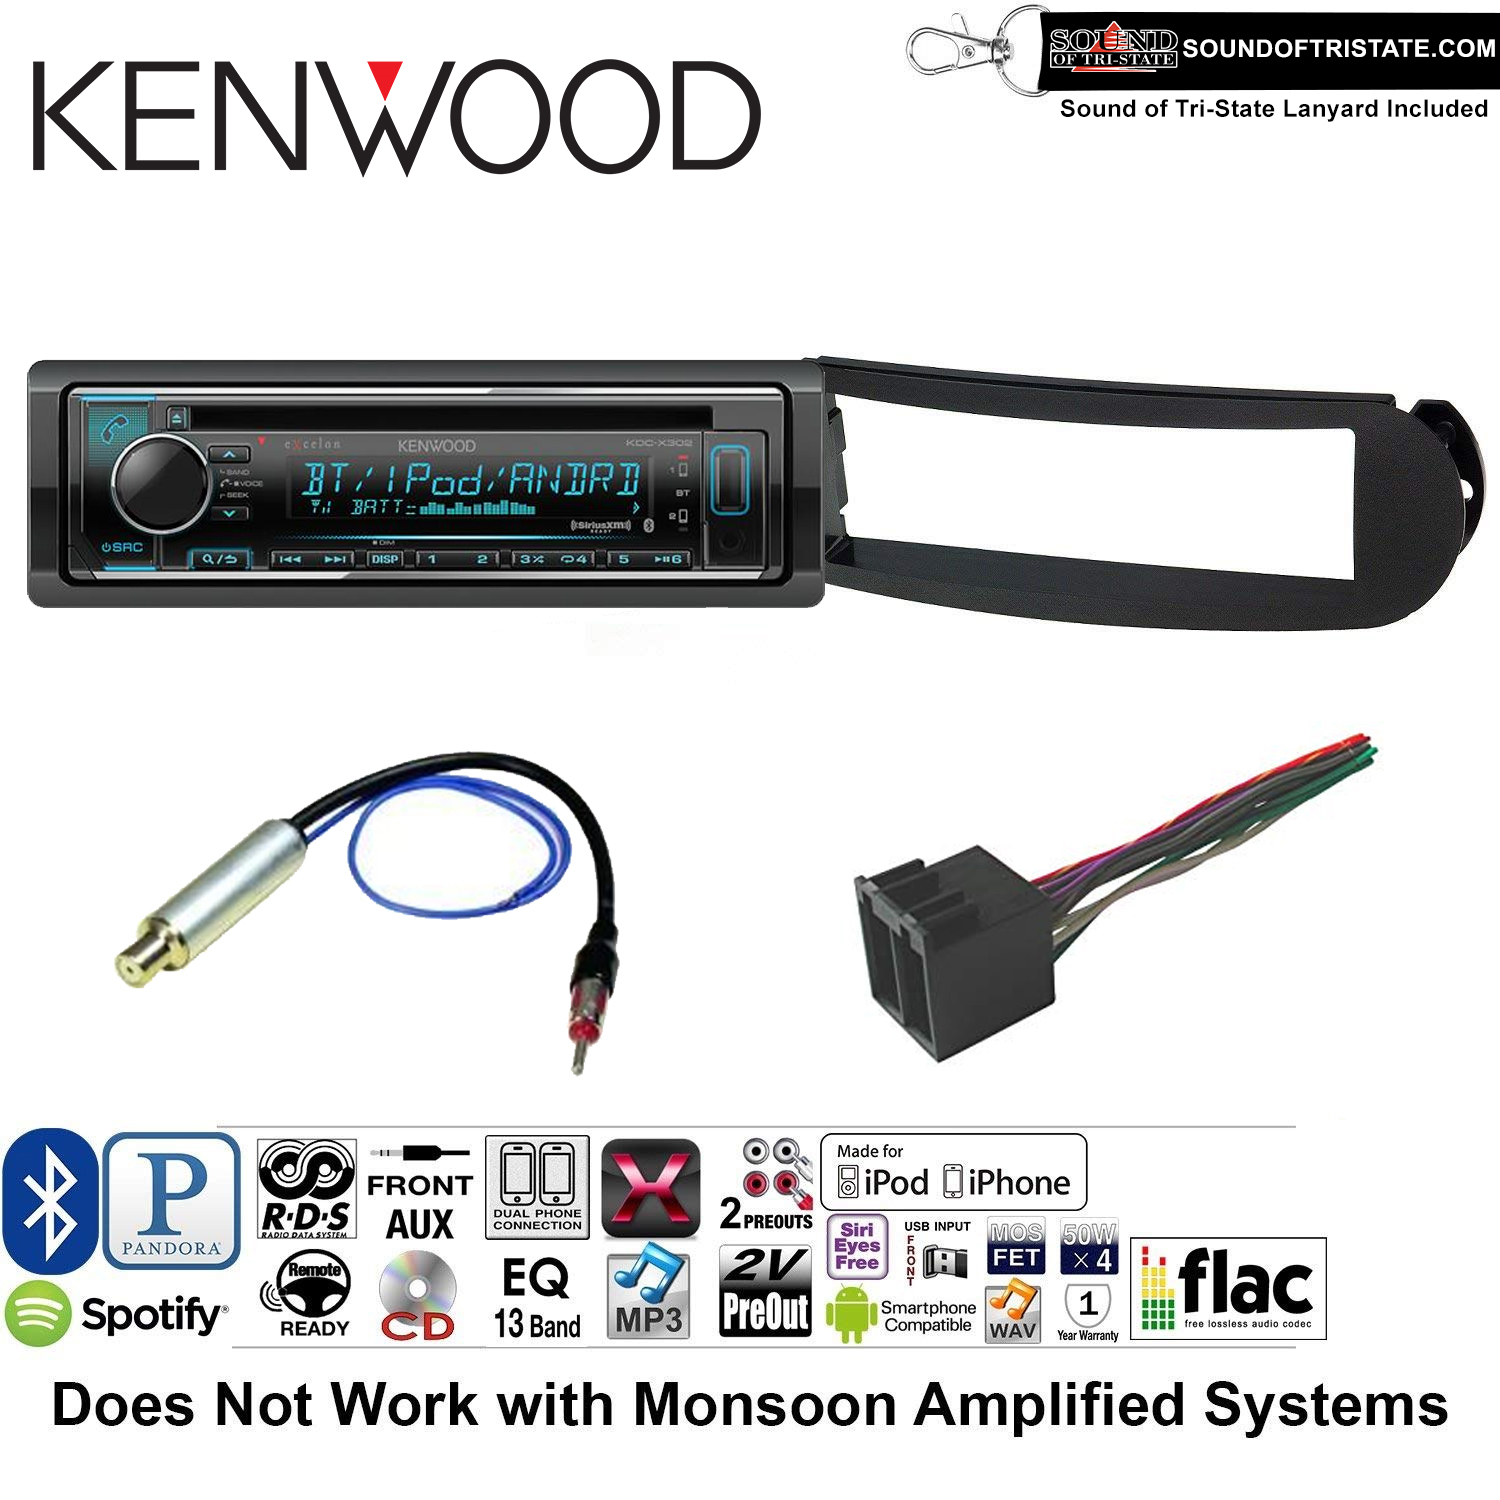 Kenwood KDCX302 Double Din Radio Install Kit with Bluetooth, CD Player, USB/AUX Fits 1998-2010 Volkswagen Beetle - (With Aktiv Factory Amplified System) and a SOTS lanyard included